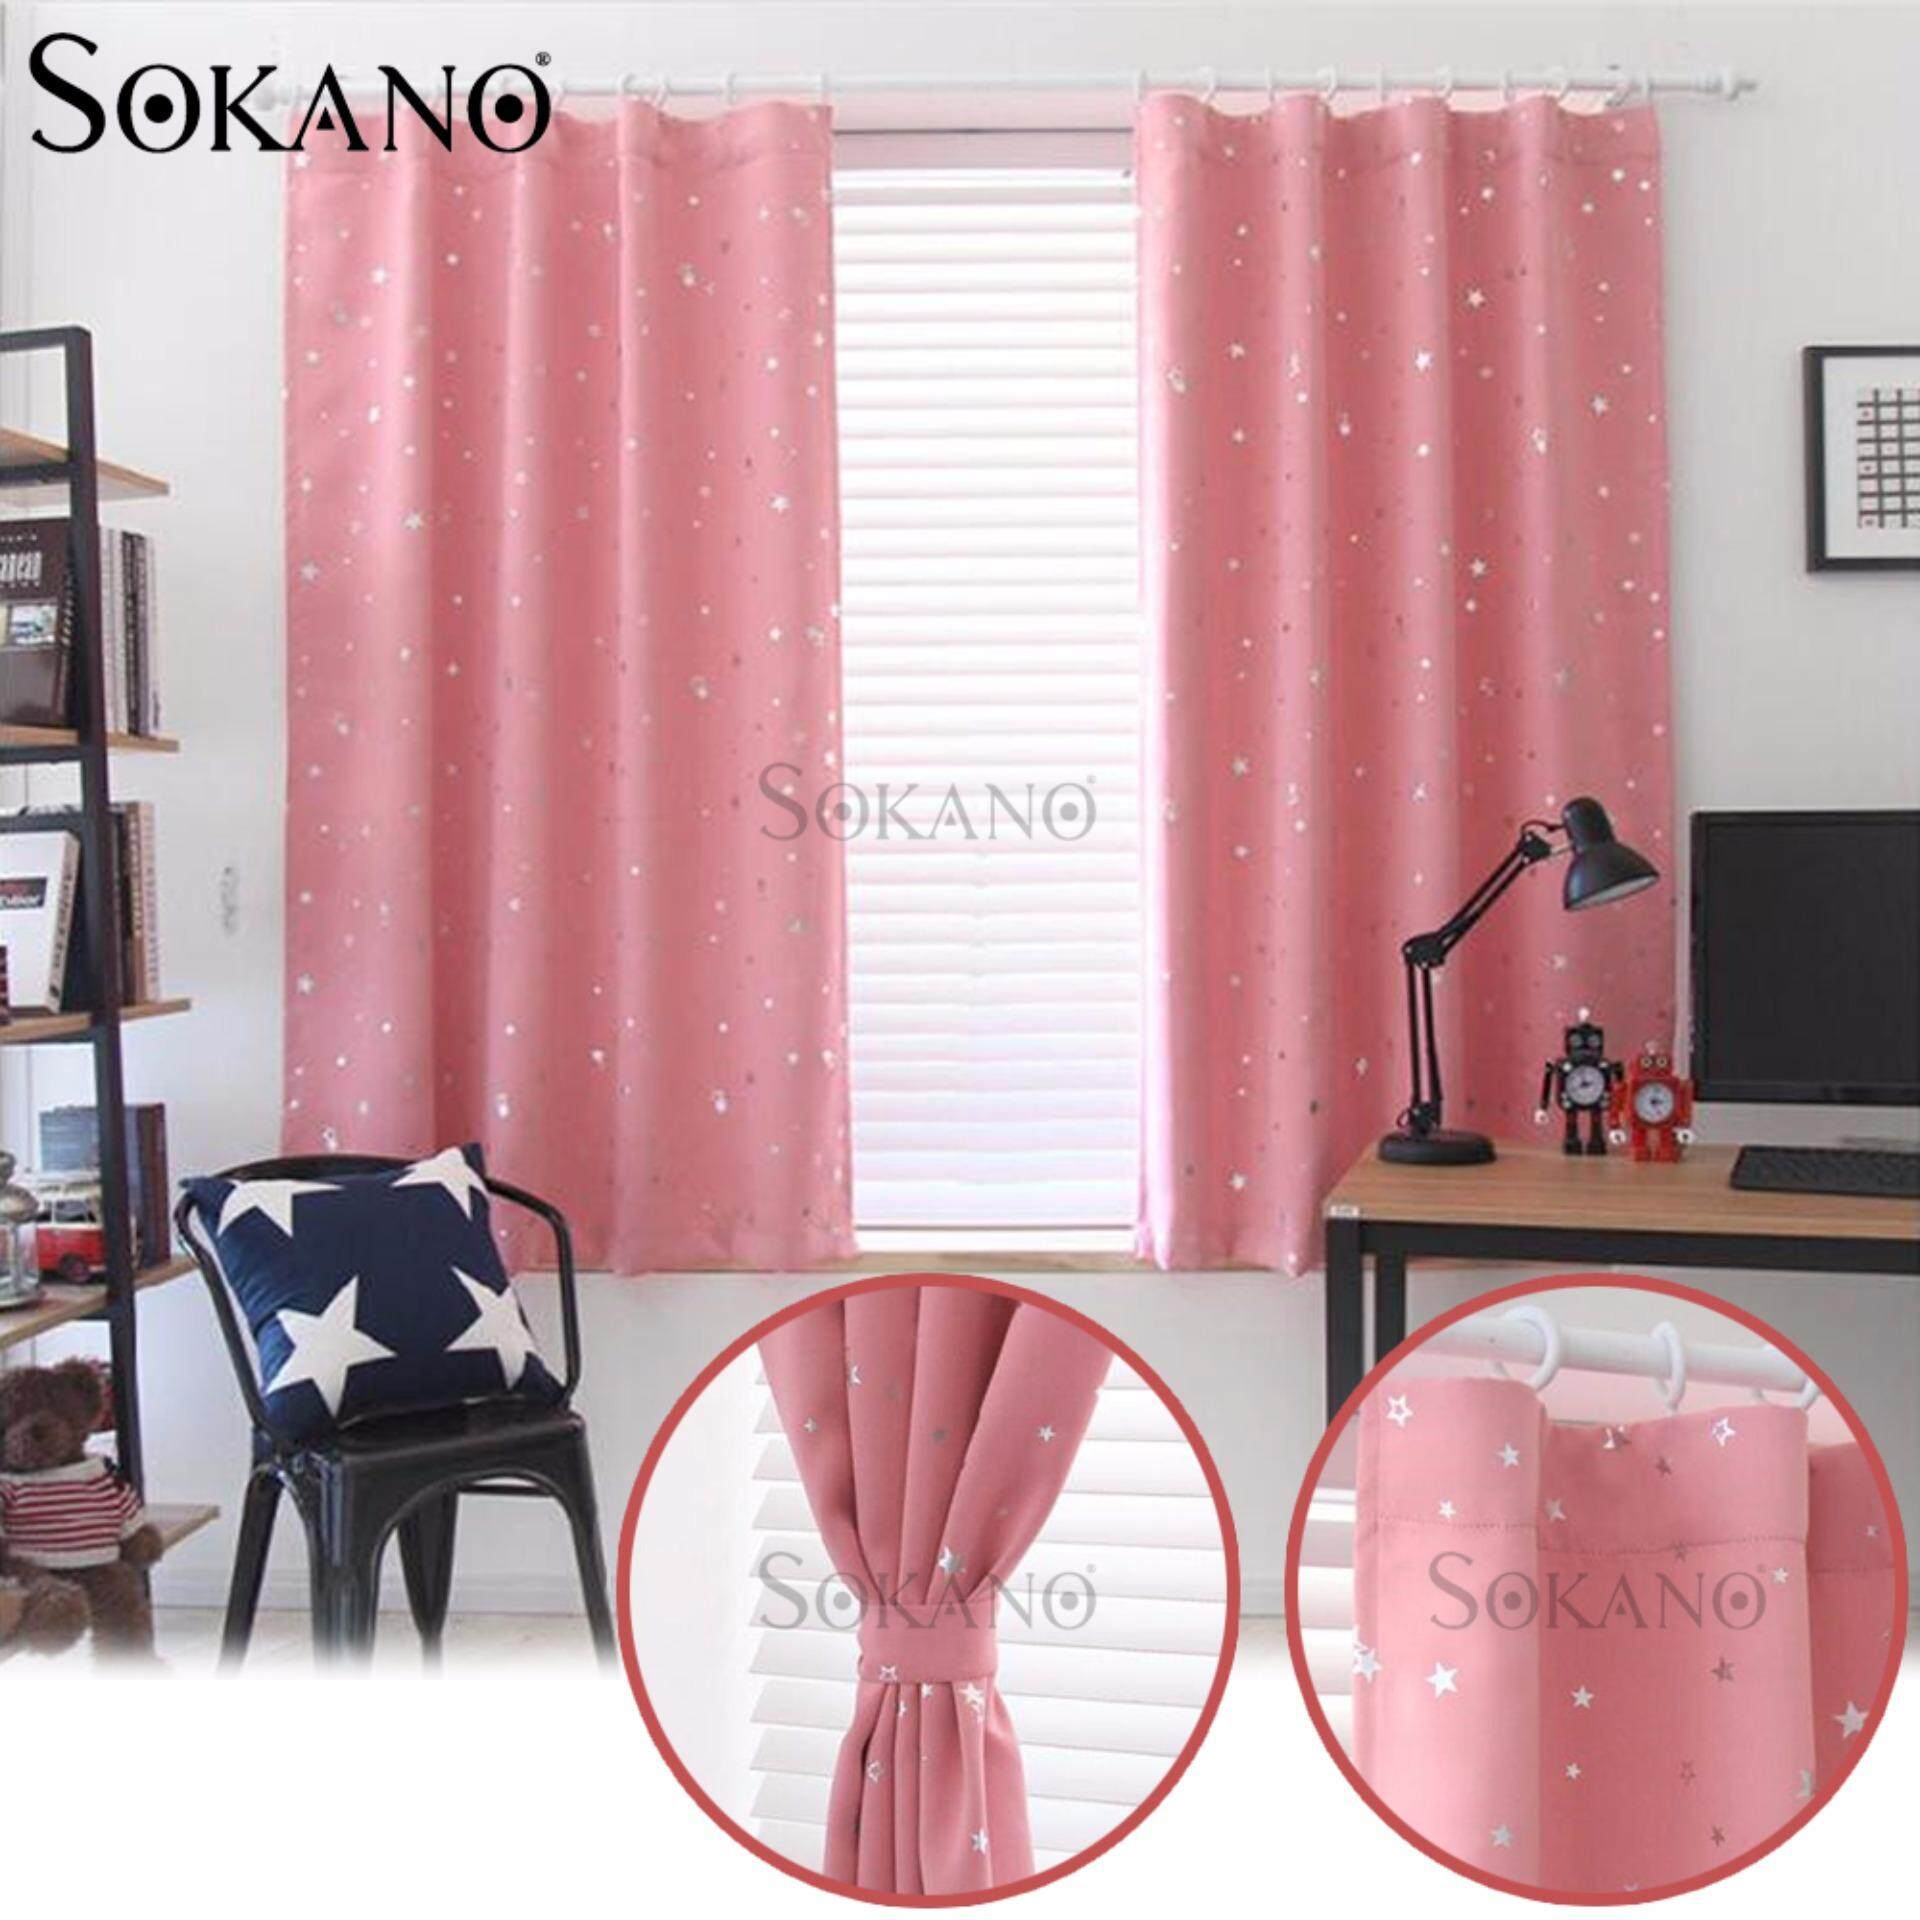 SOKANO Black Out Curtain CT015 Premium Quality Starry Design Thick Curtain (1 Panel) 100cm x 200cm- Pink